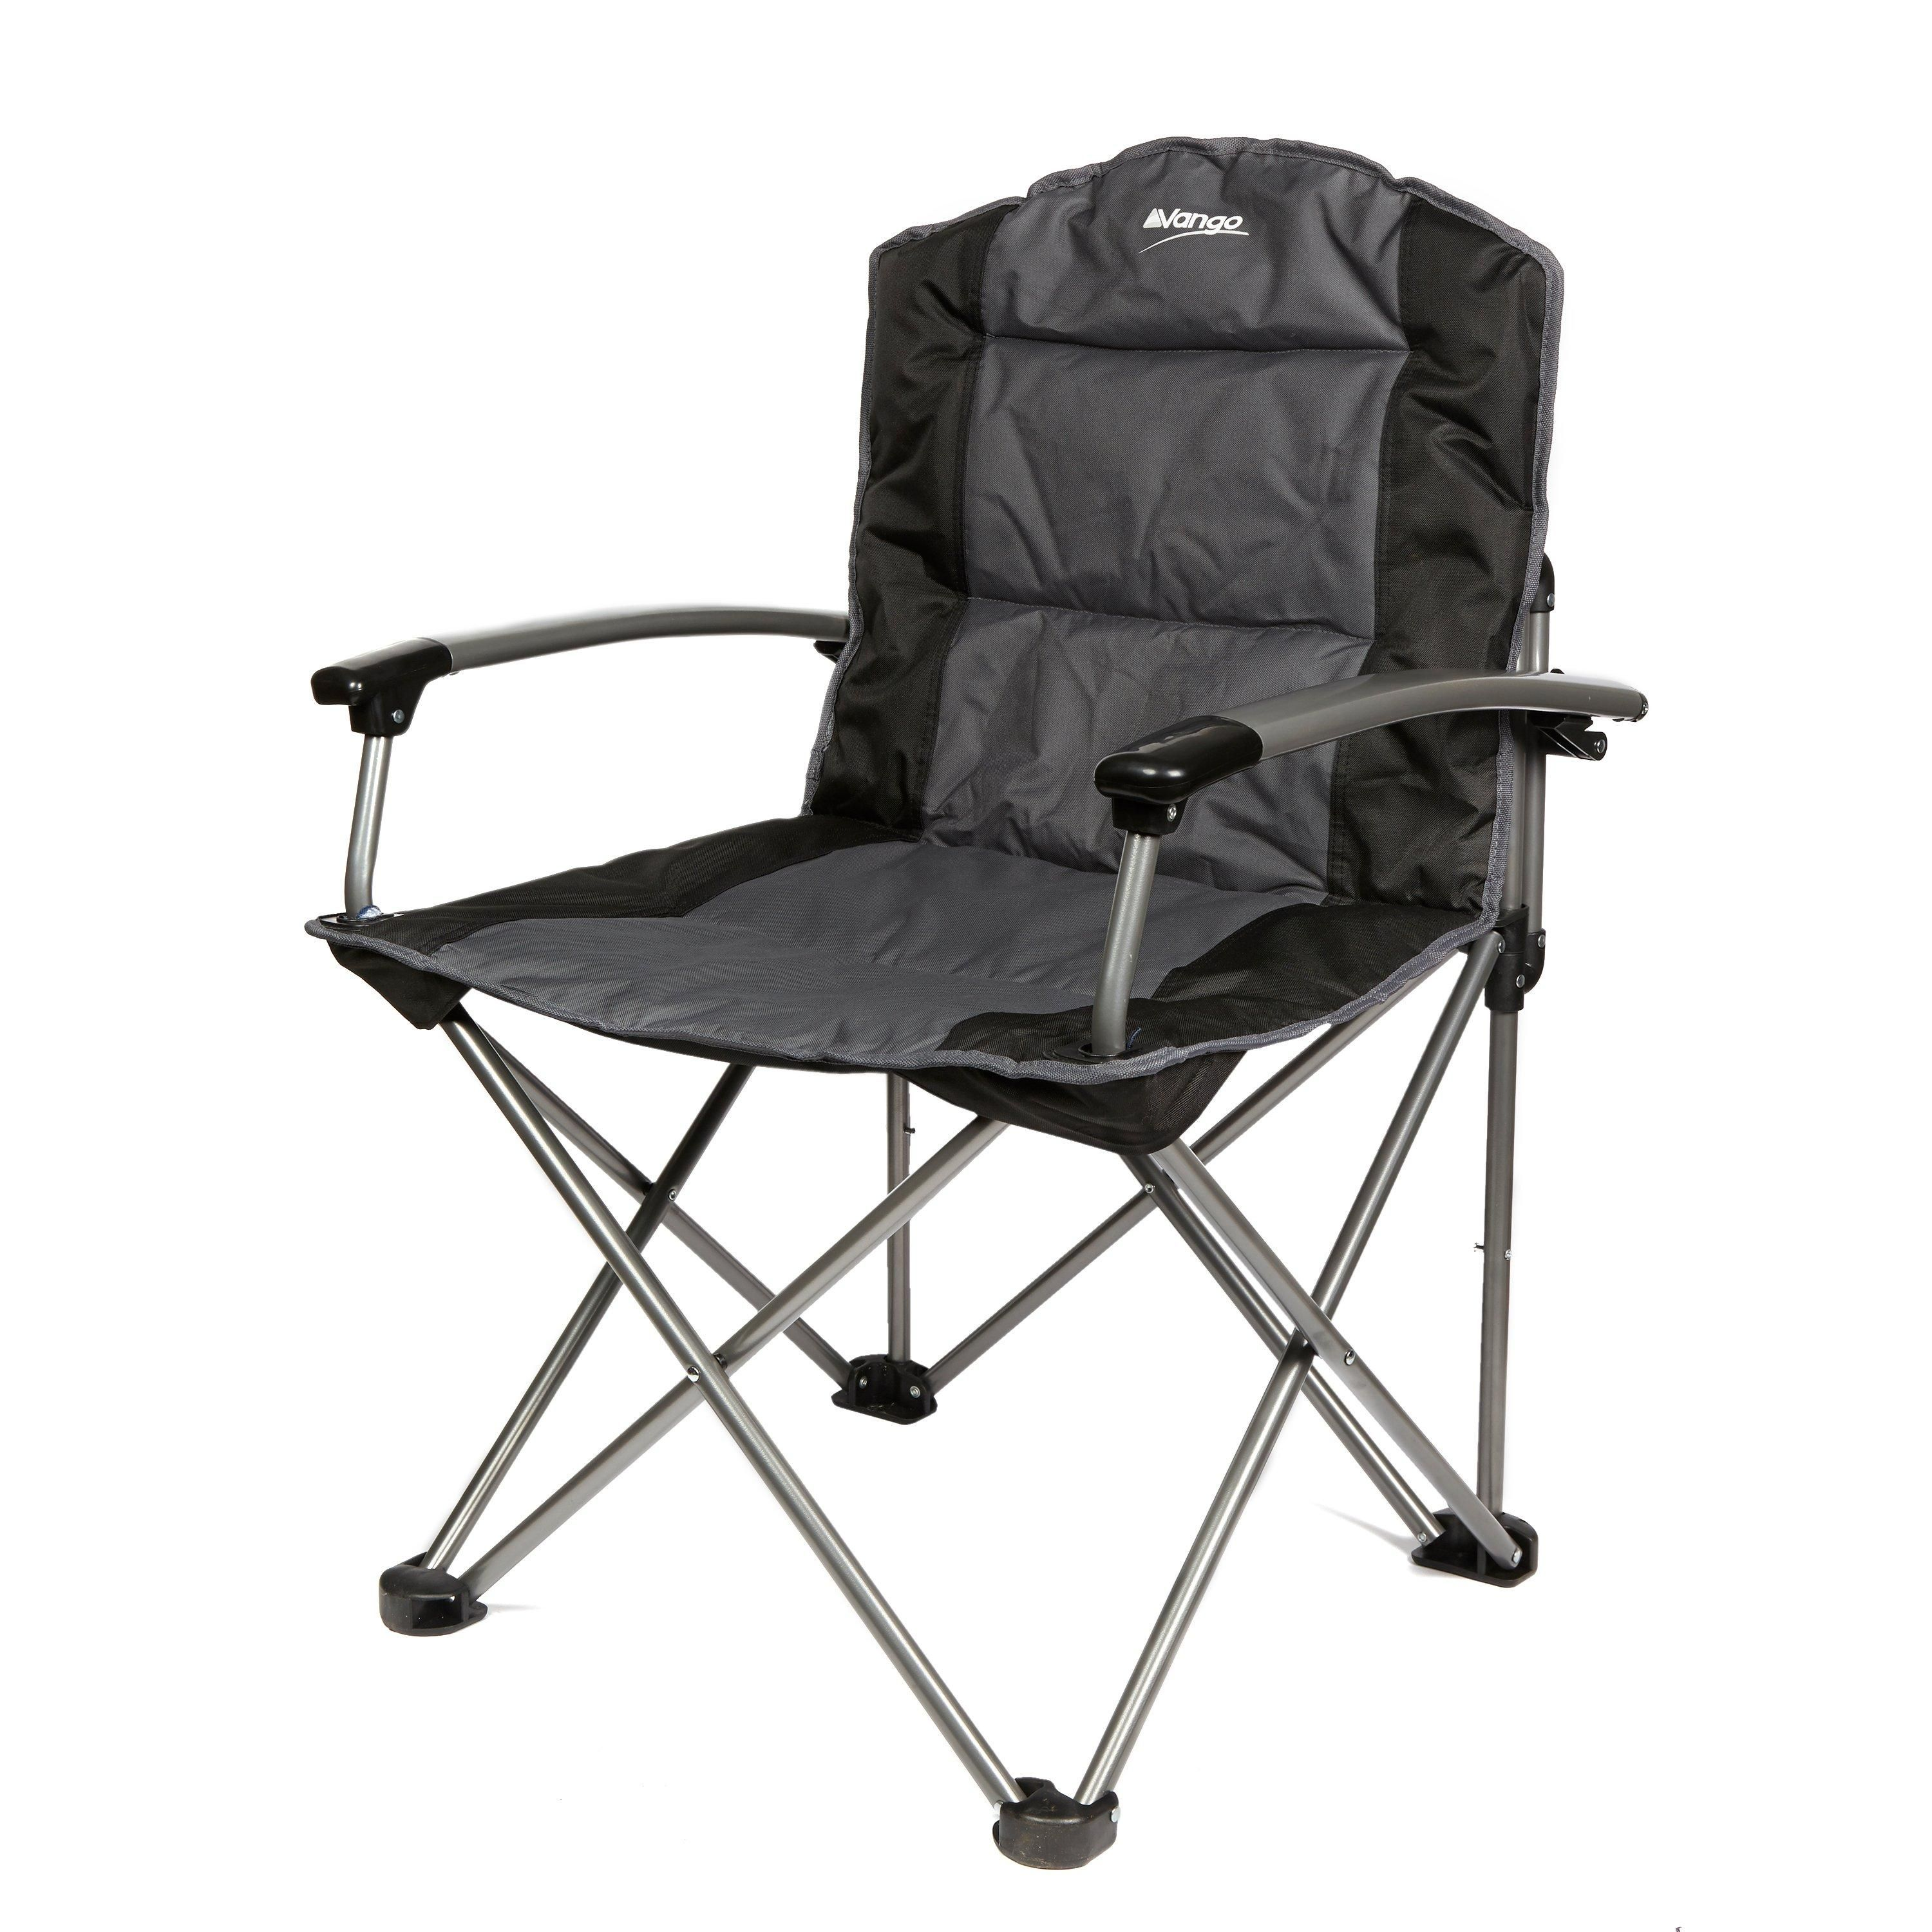 Camping Chairs Big 5 Dining Arm Chair Kraken Oversized Best Heavy Duty